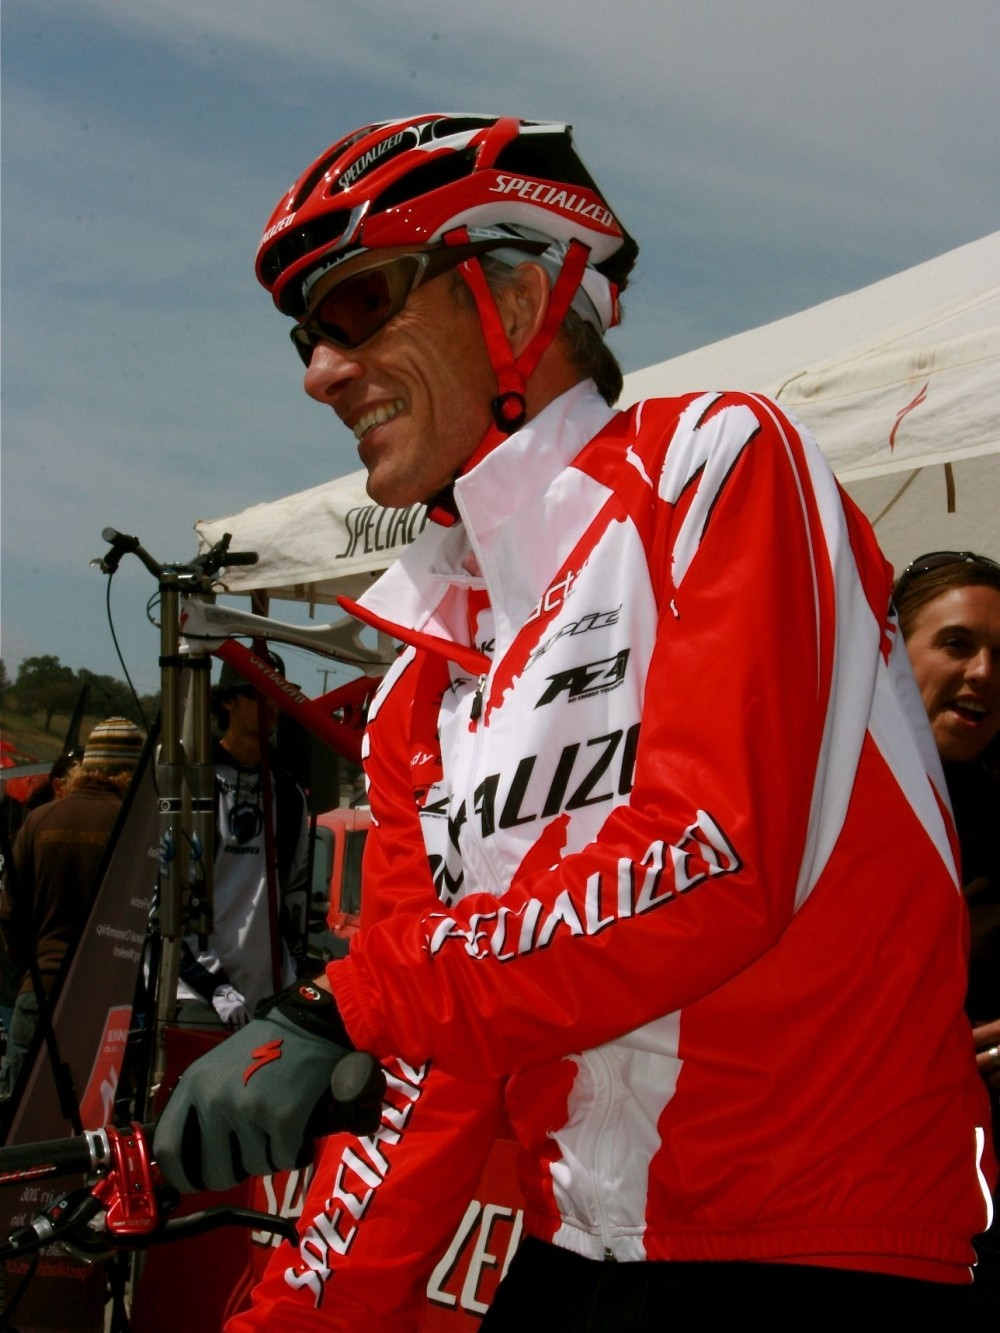 Specialized ambassadorNed Overend, still racing (and winning).